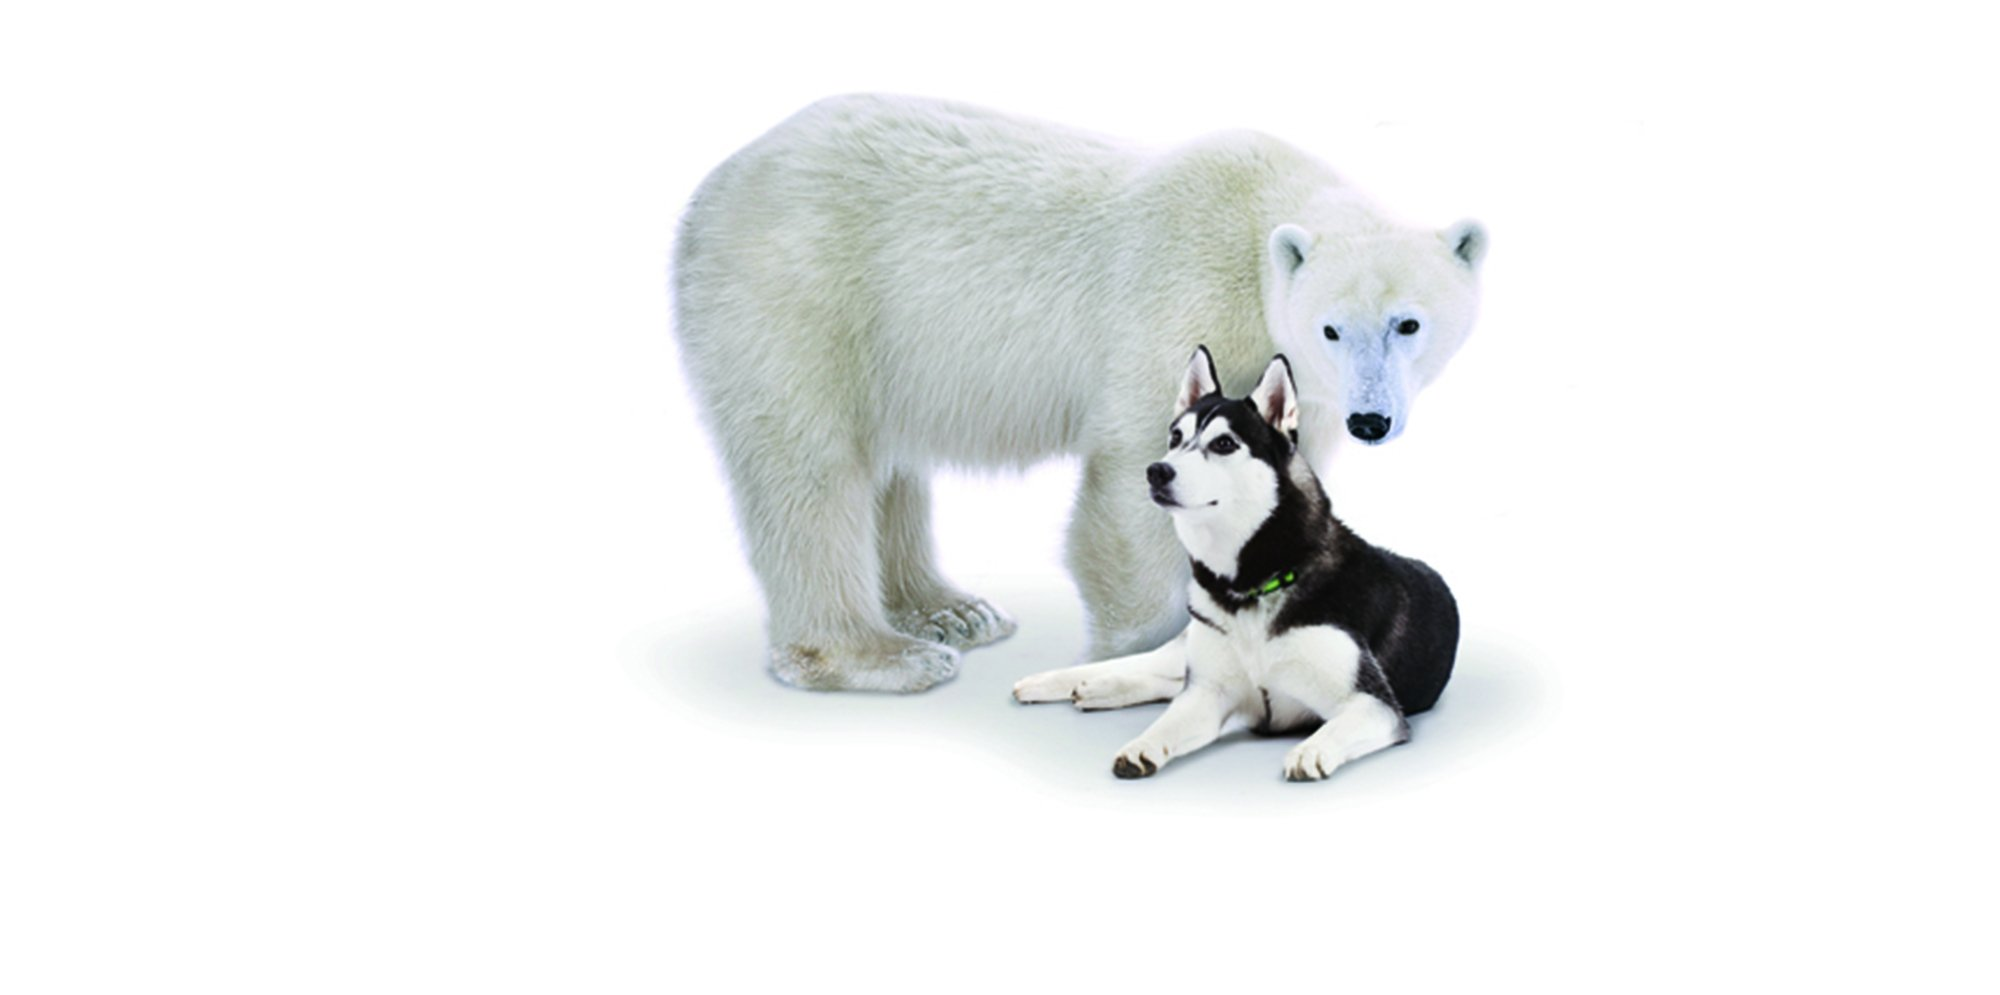 A polar bear and a husky dog in front of a white background